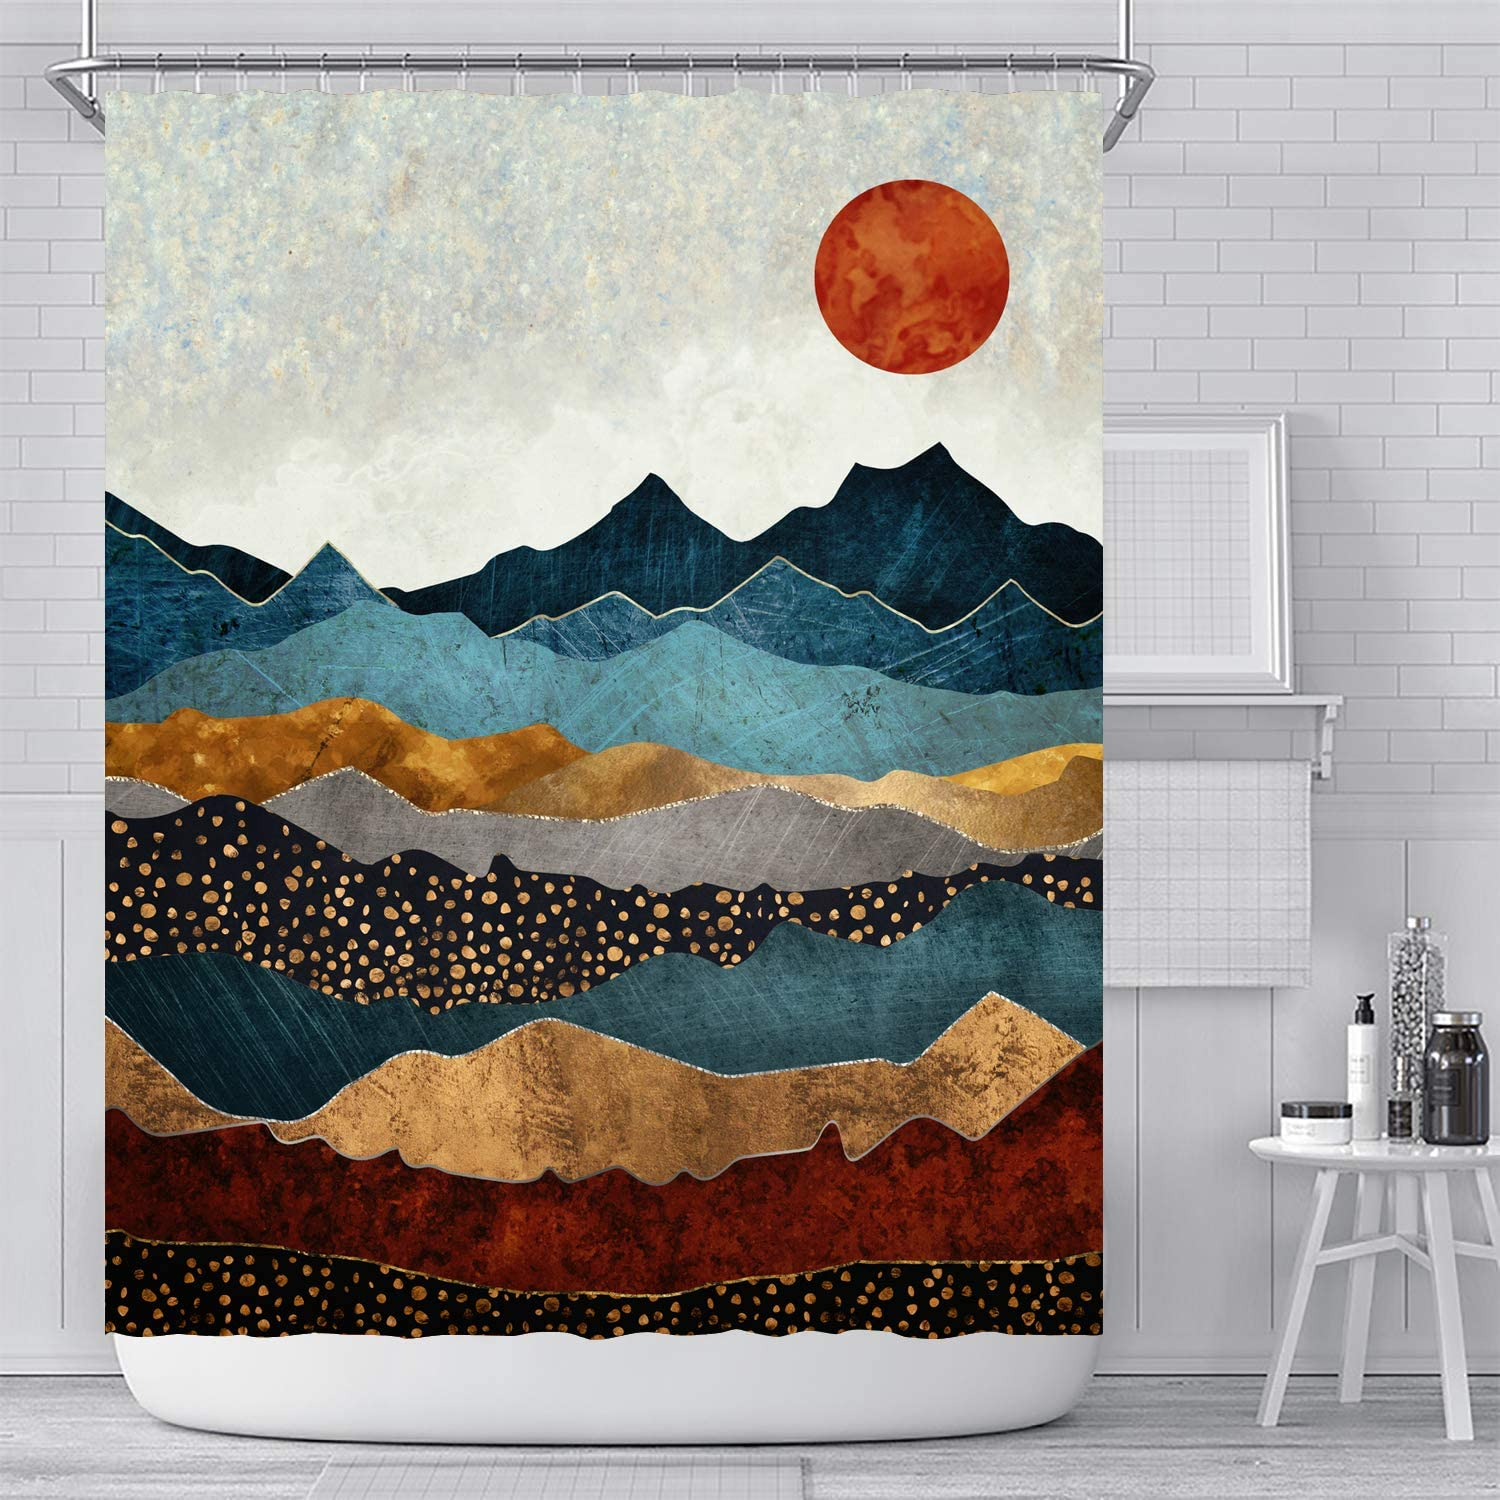 Ujoyen Mountain Shower Curtain Sunset Sunrise Nature Landscape Bathroom Curtain Colorful Abstract Art Painting Bathroom Decor with Hooks Waterproof Washable 72 x 72 inches- red Black Blue